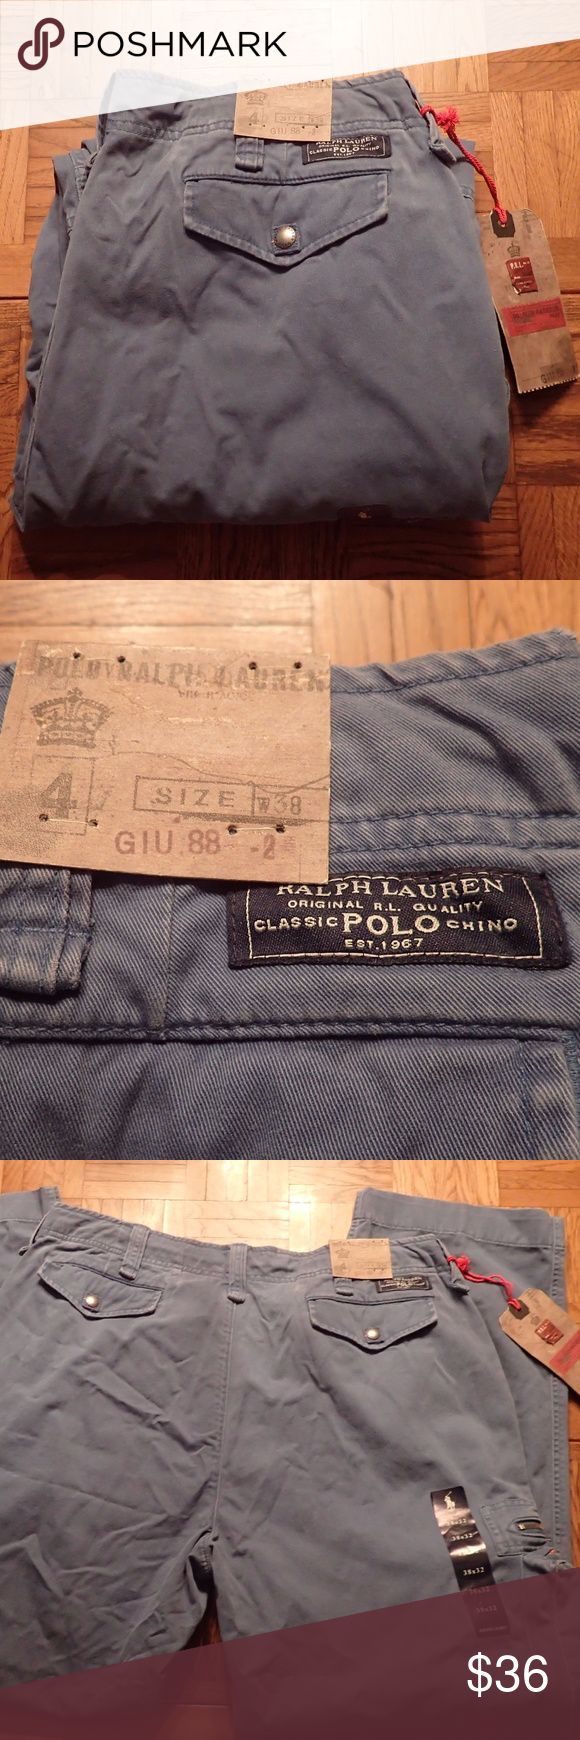 NWT Polo by Ralph Lauren Blue Cargo Pants NWT Polo by Ralph Lauren Blue Cargo Pants  * Size 38 x 32 * Multiple pockets with orange and silver zipper accents Polo by Ralph Lauren Jeans Straight